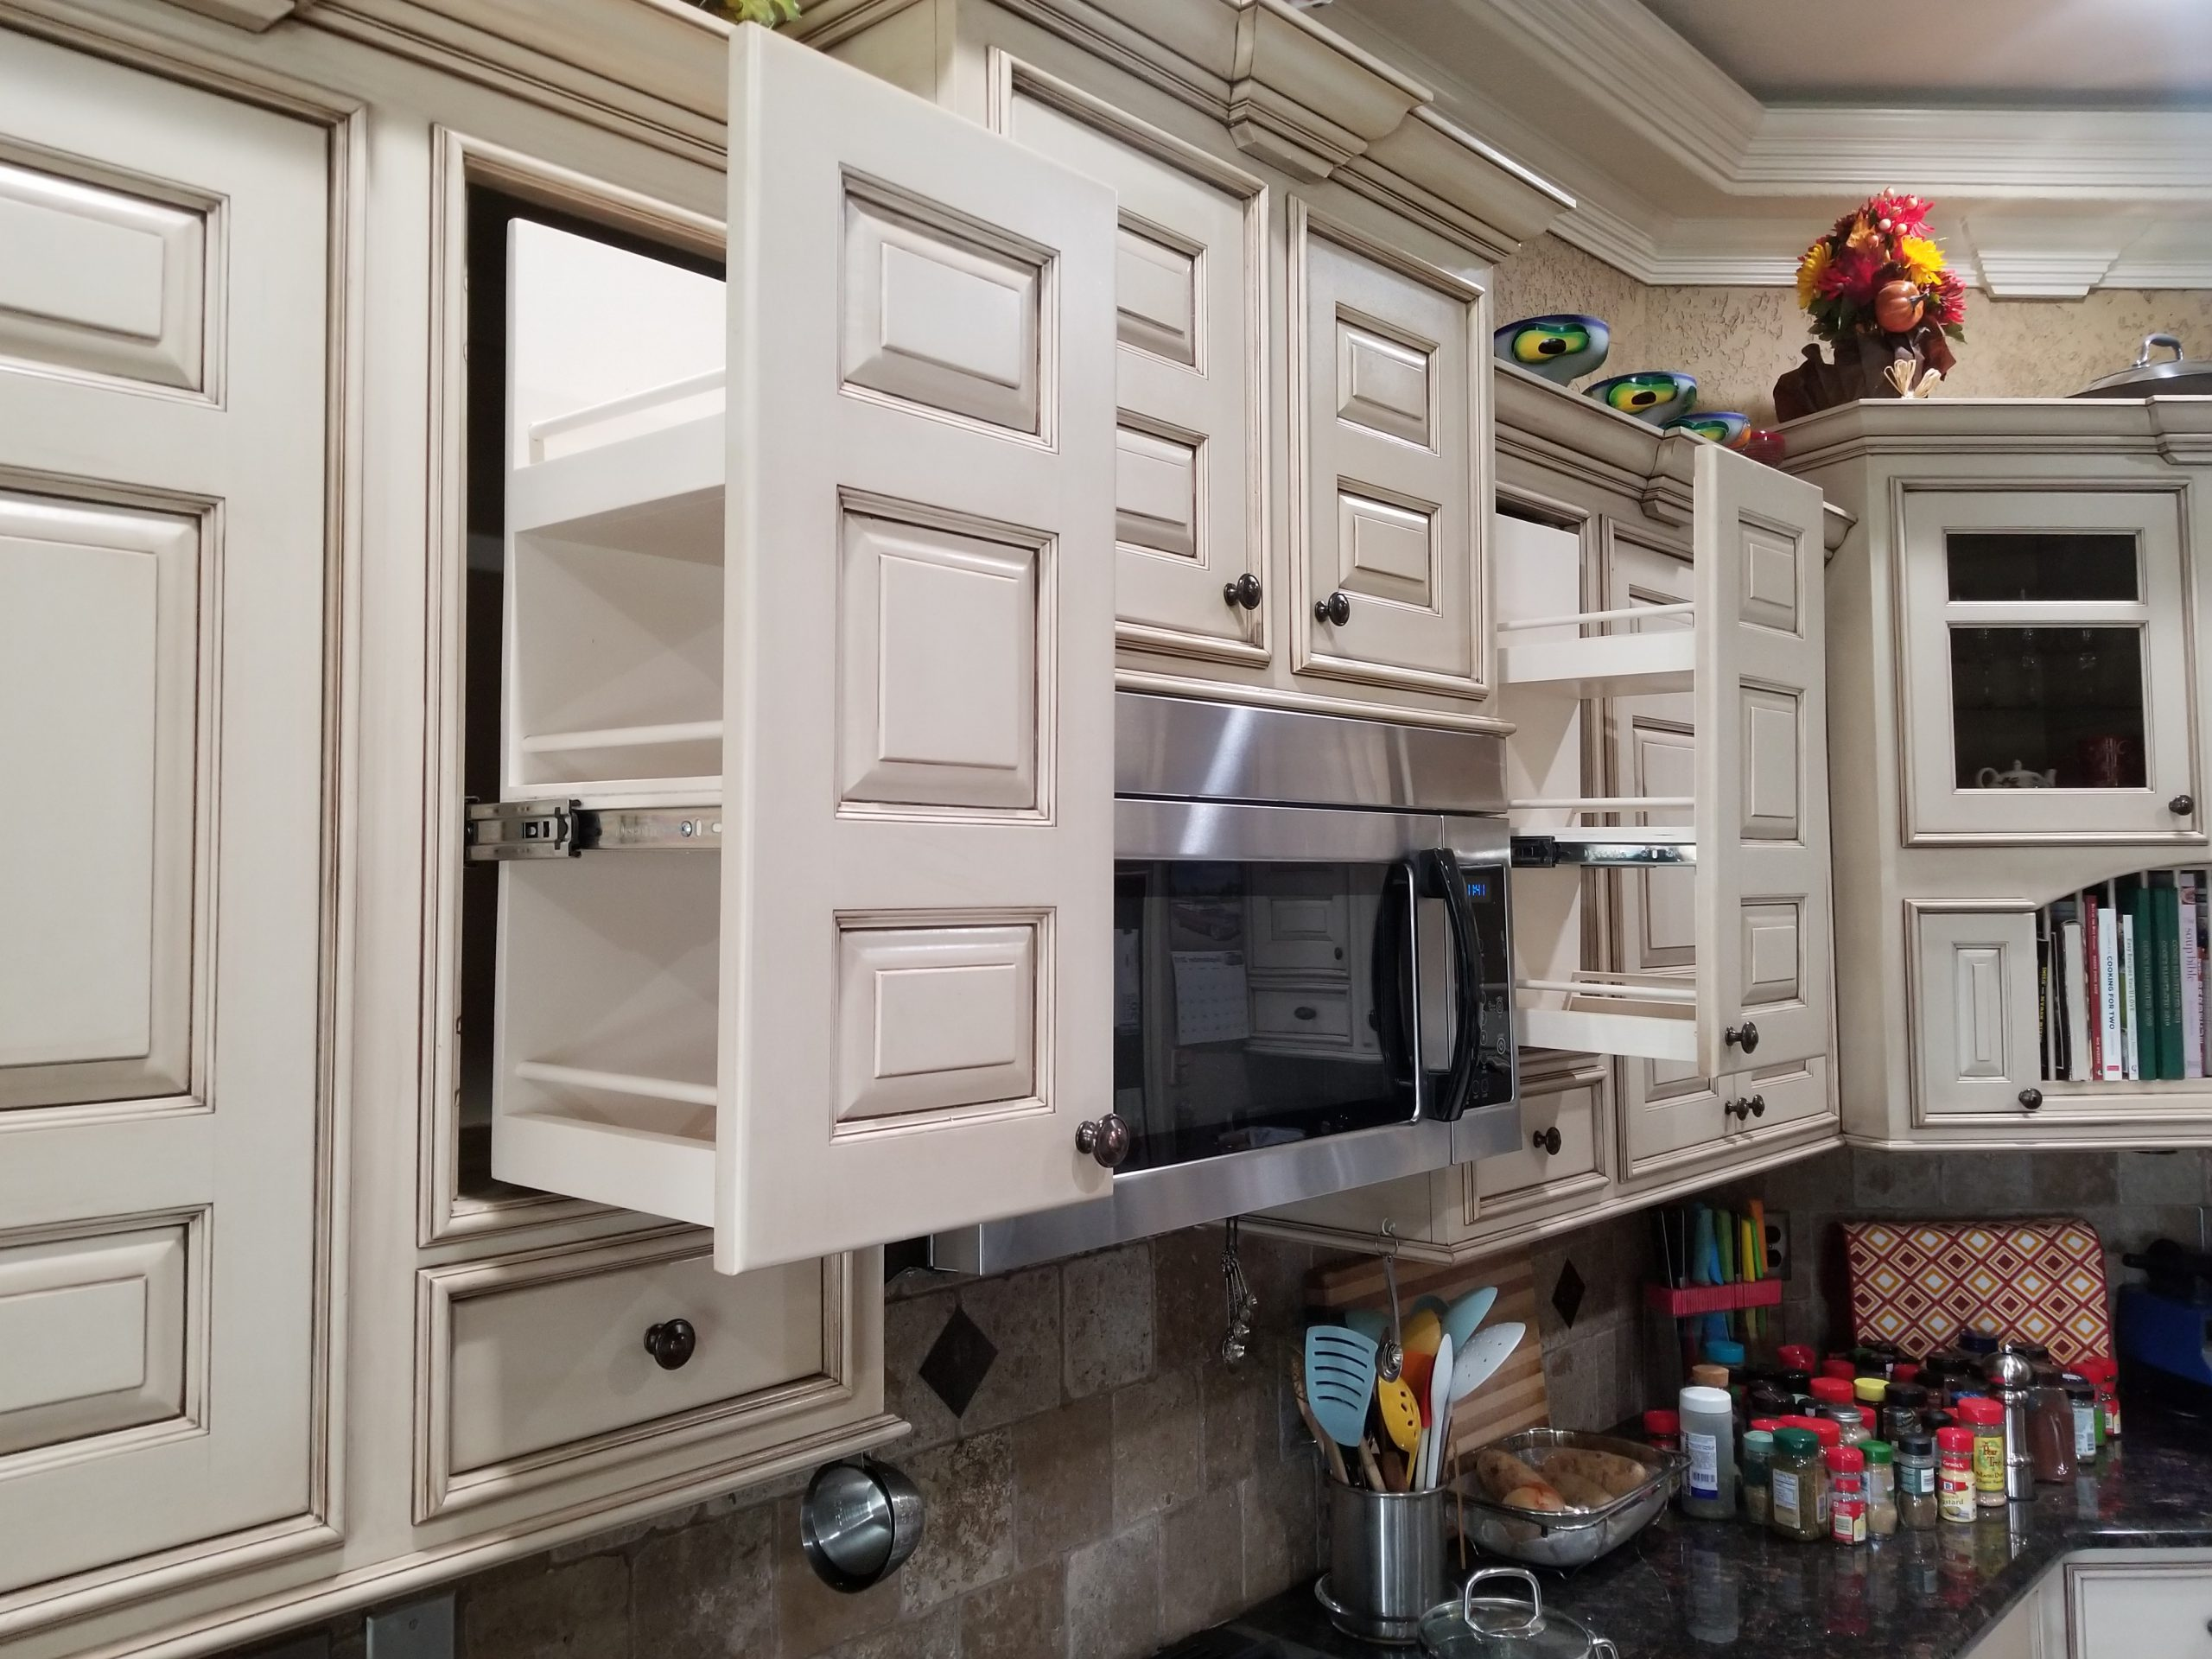 Buy custom traditional kitchen cabinets factory direct in Tennent NJ, Buy custom slab panel kitchen cabinets factory direct in Tennent NJ, Buy custom flat panel kitchen cabinets factory direct in Tennent NJ